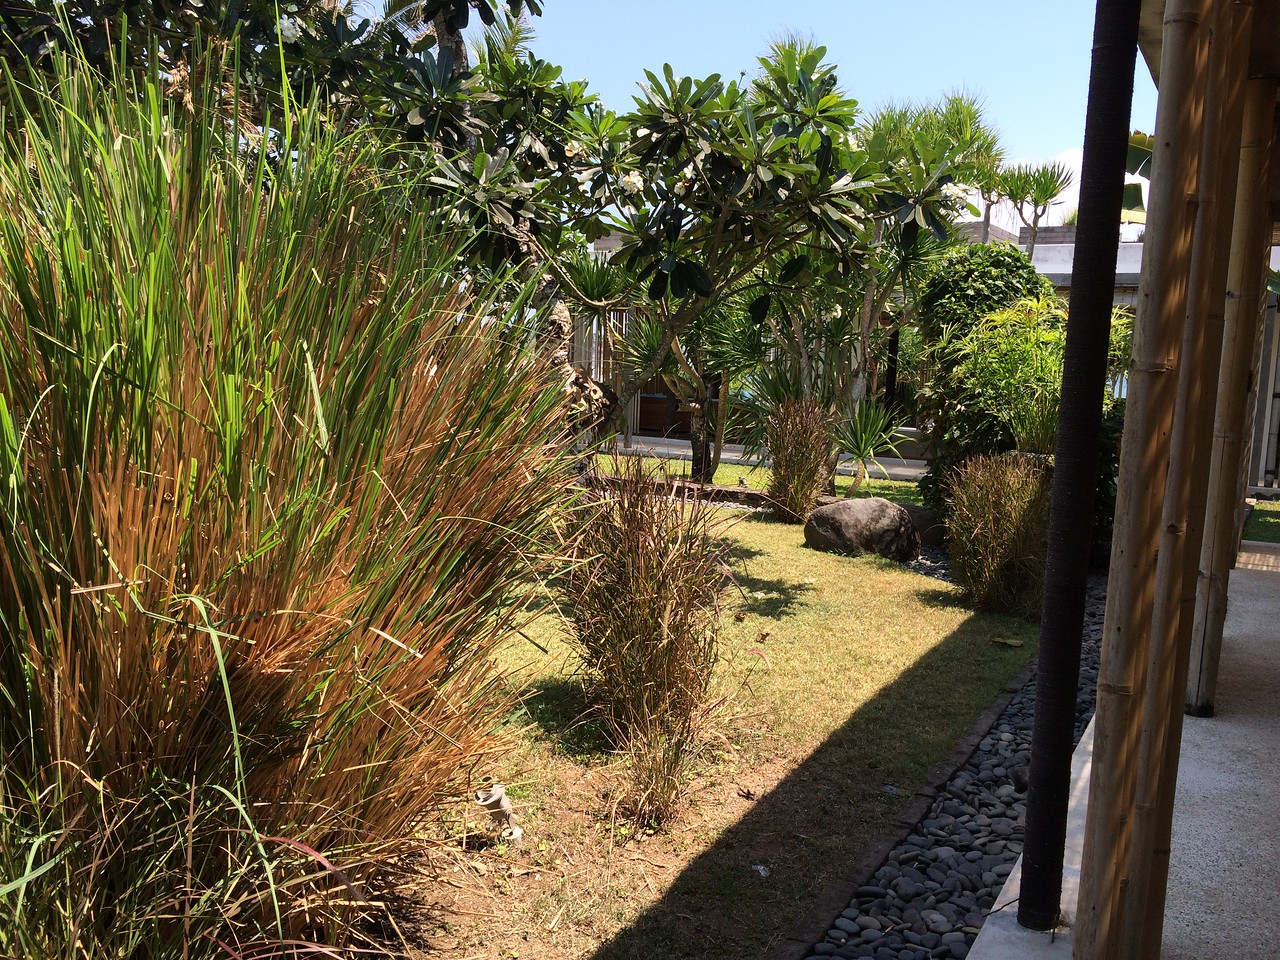 The main courtyard area. To the right of the bamboo poles is the living room.